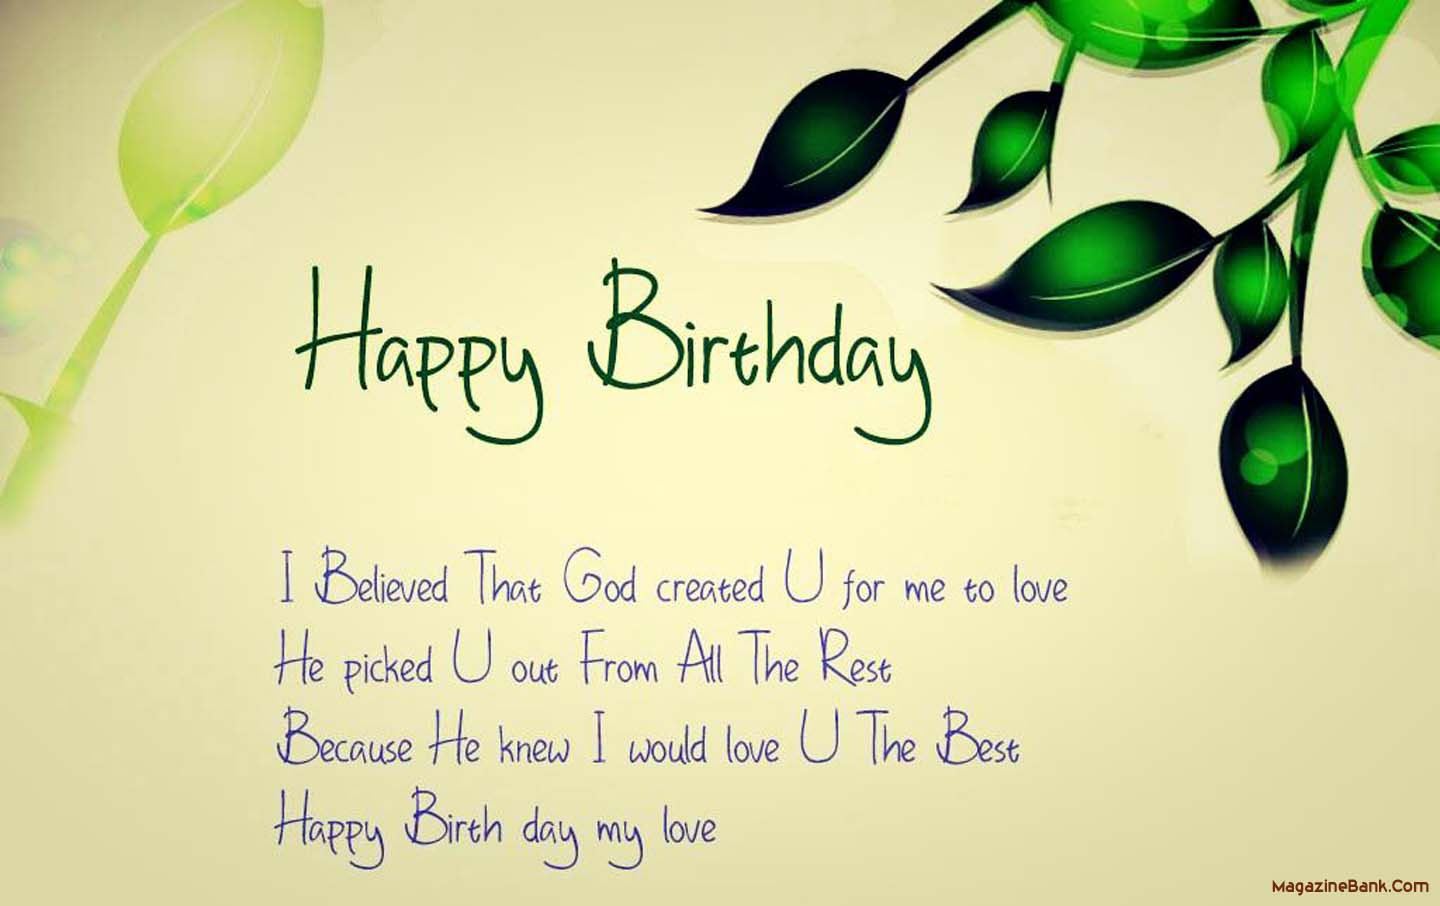 Best ideas about Happy Birthday Image Quotes . Save or Pin Happy Birthday Boss Quotes From Us QuotesGram Now.